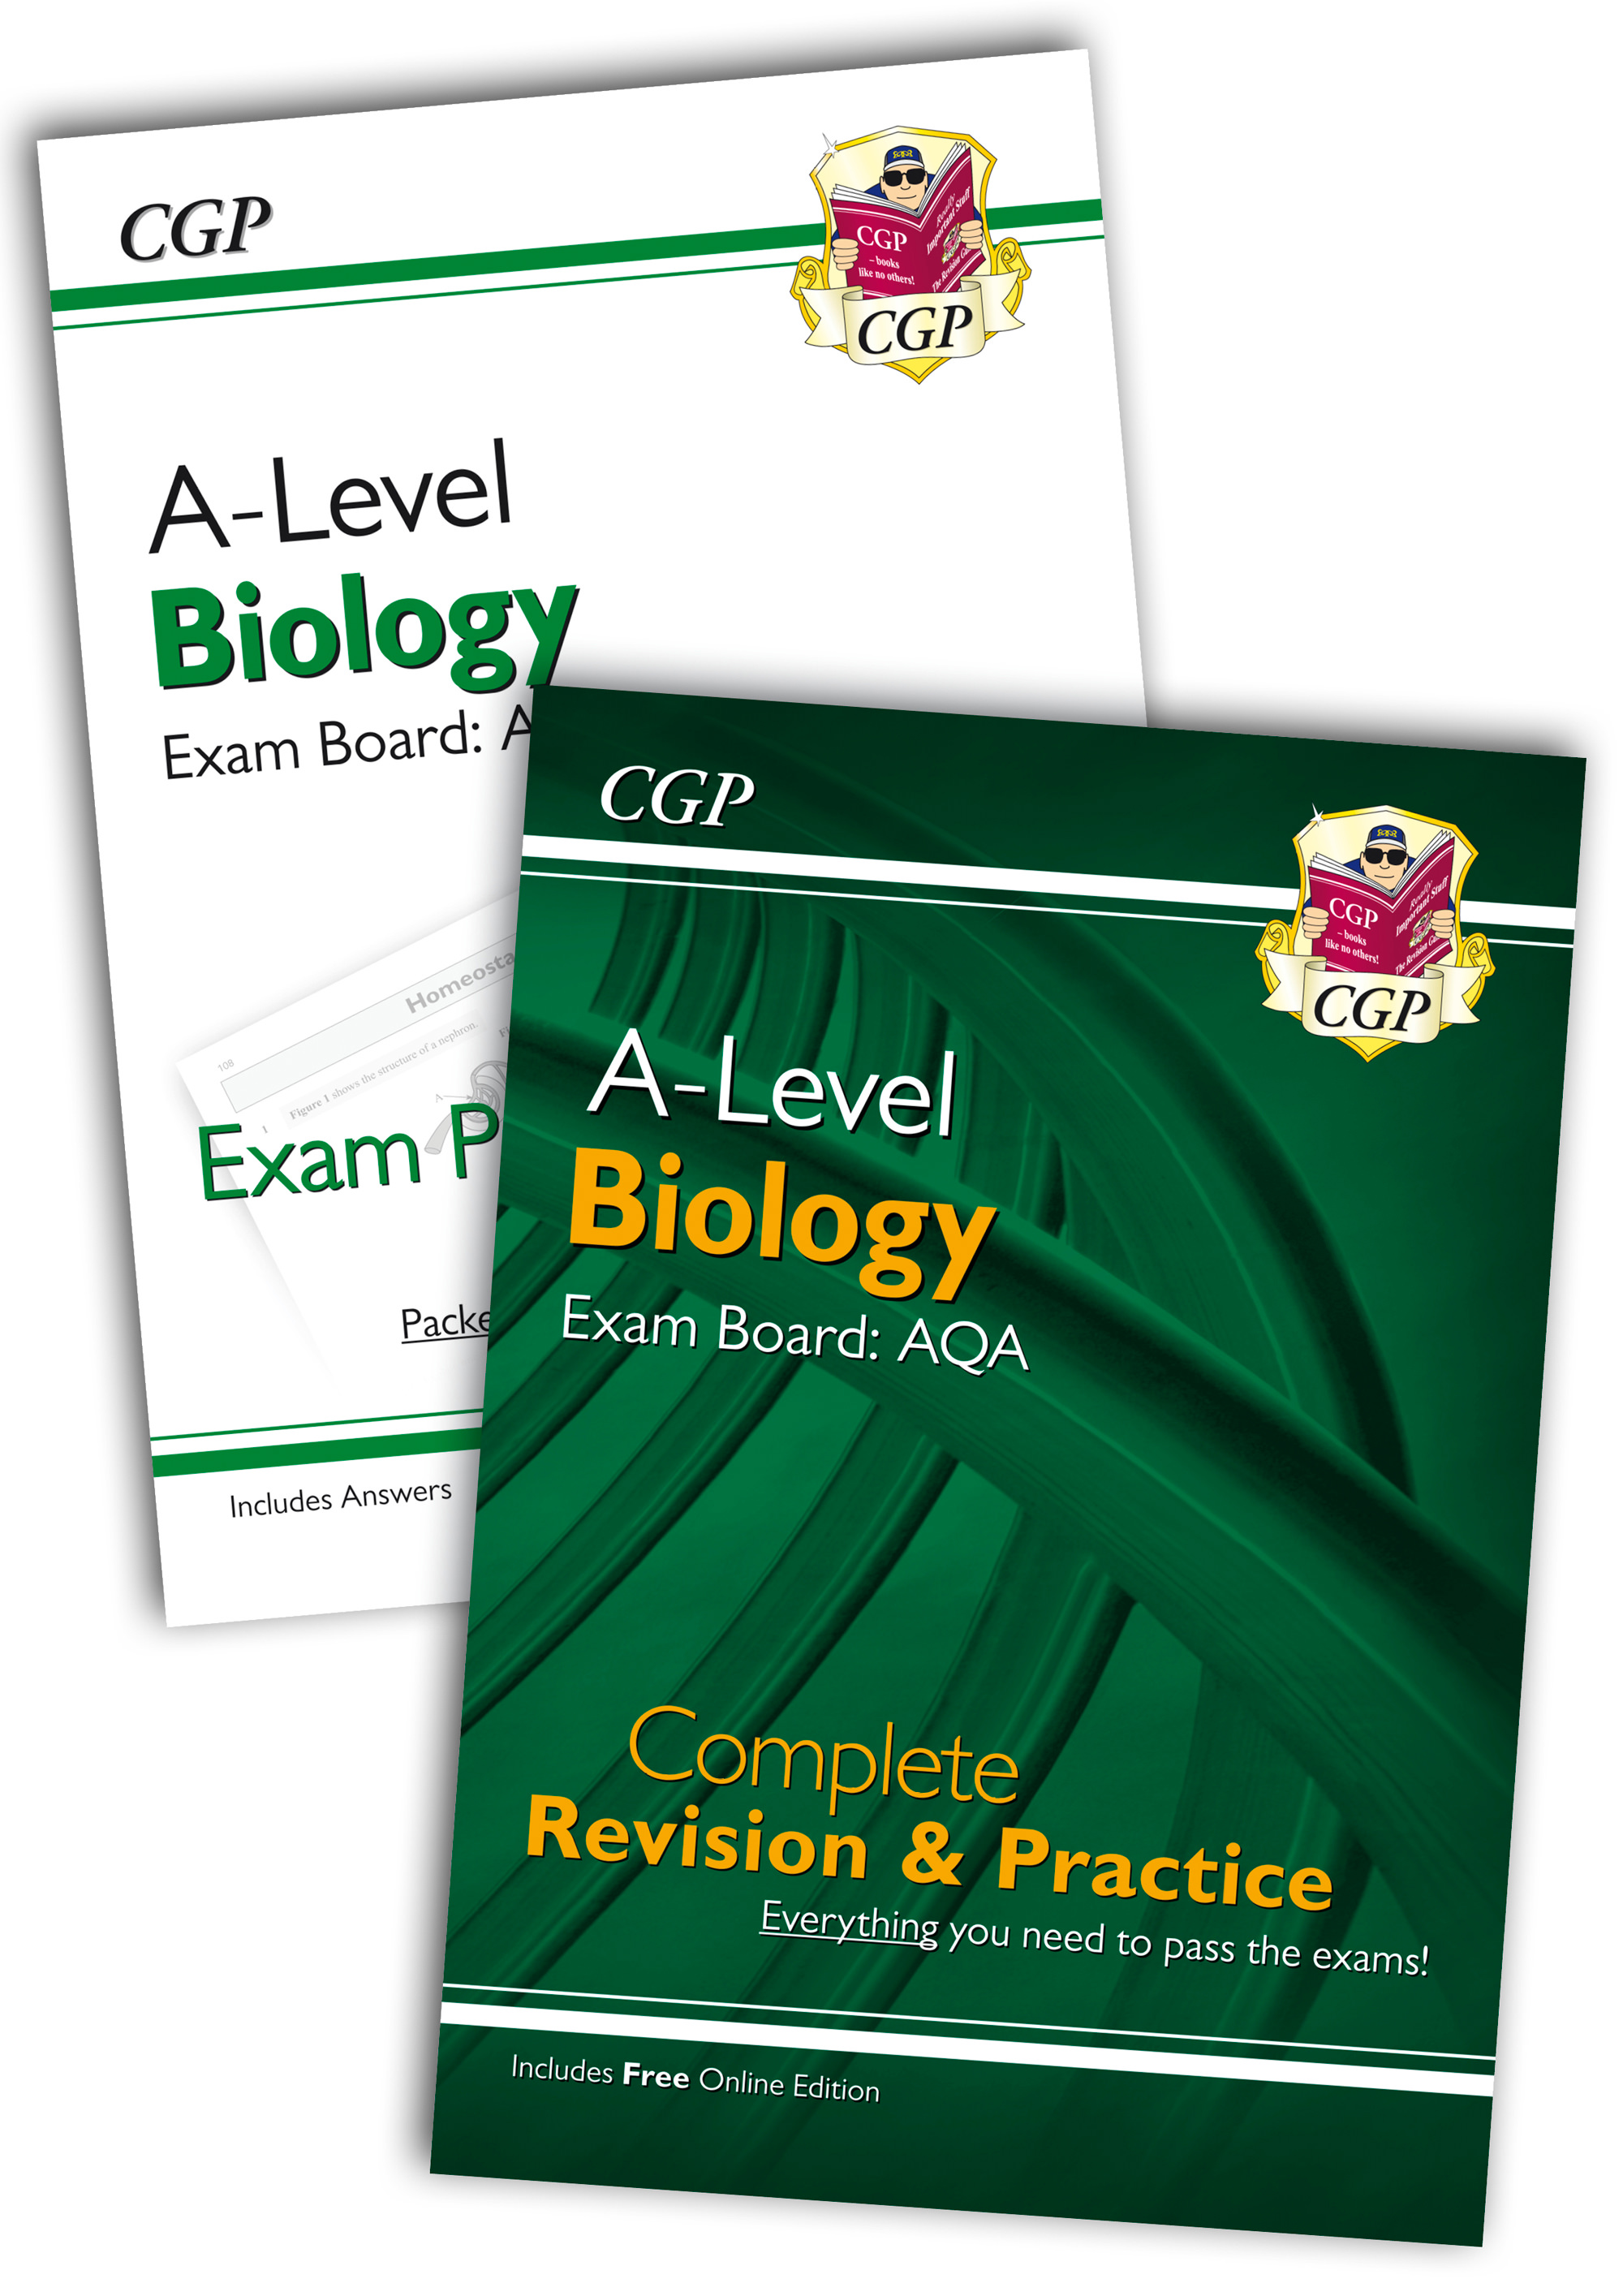 BARQB71 - New Complete Revision and Exam Practice A-Level Biology Bundle: AQA Year 1 & 2